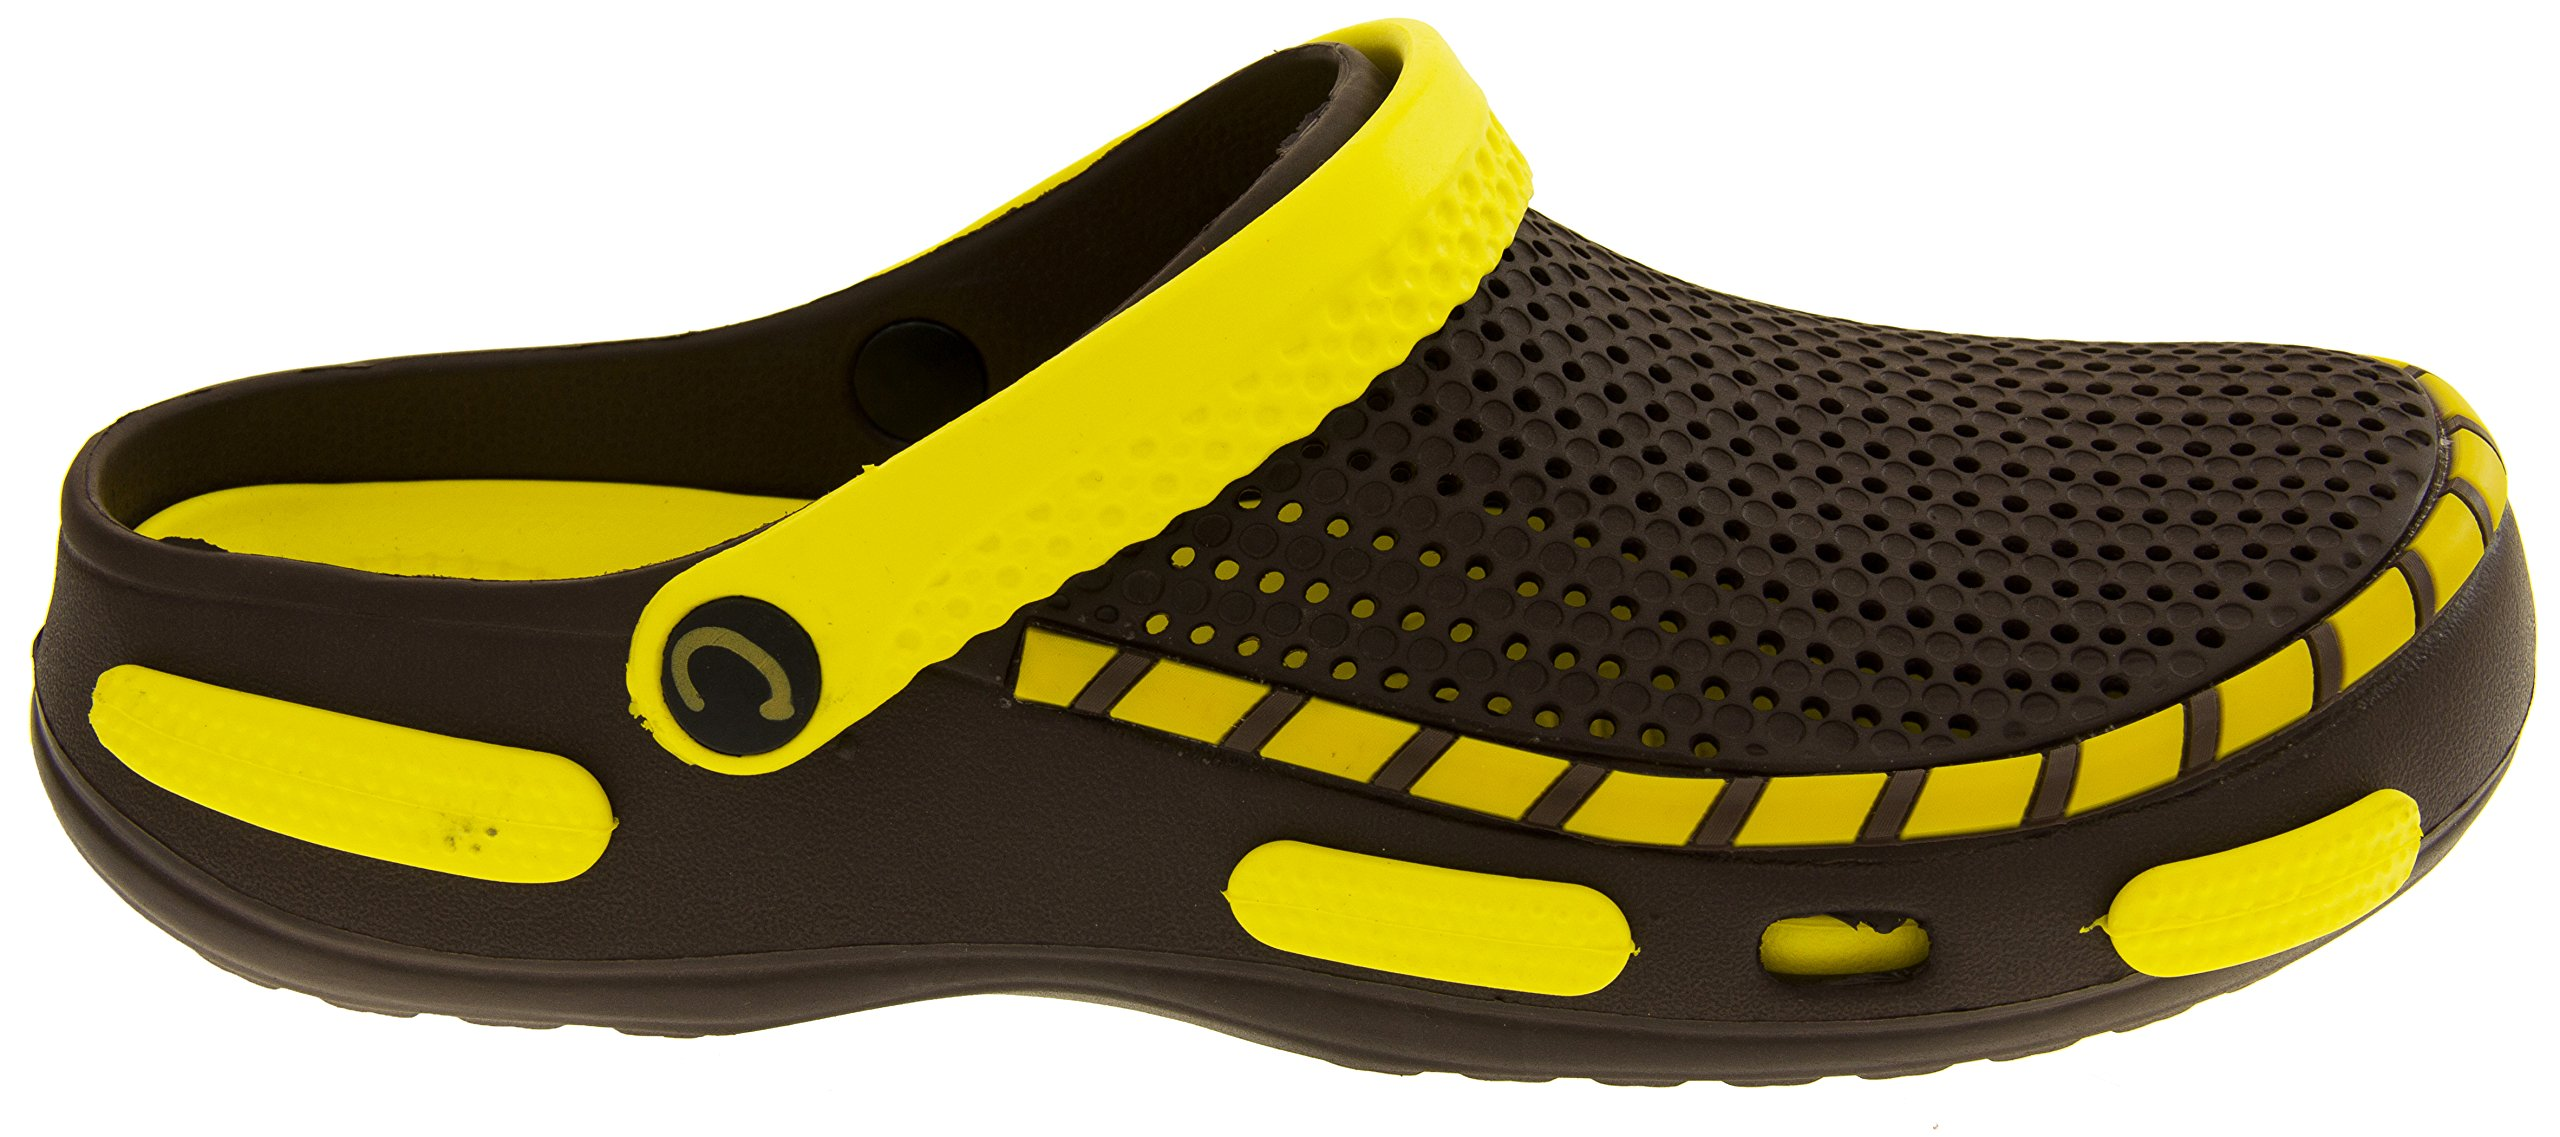 Coolers Mens Beach Clog Sandals Yellow 11 D(M) US by Coolers (Image #3)